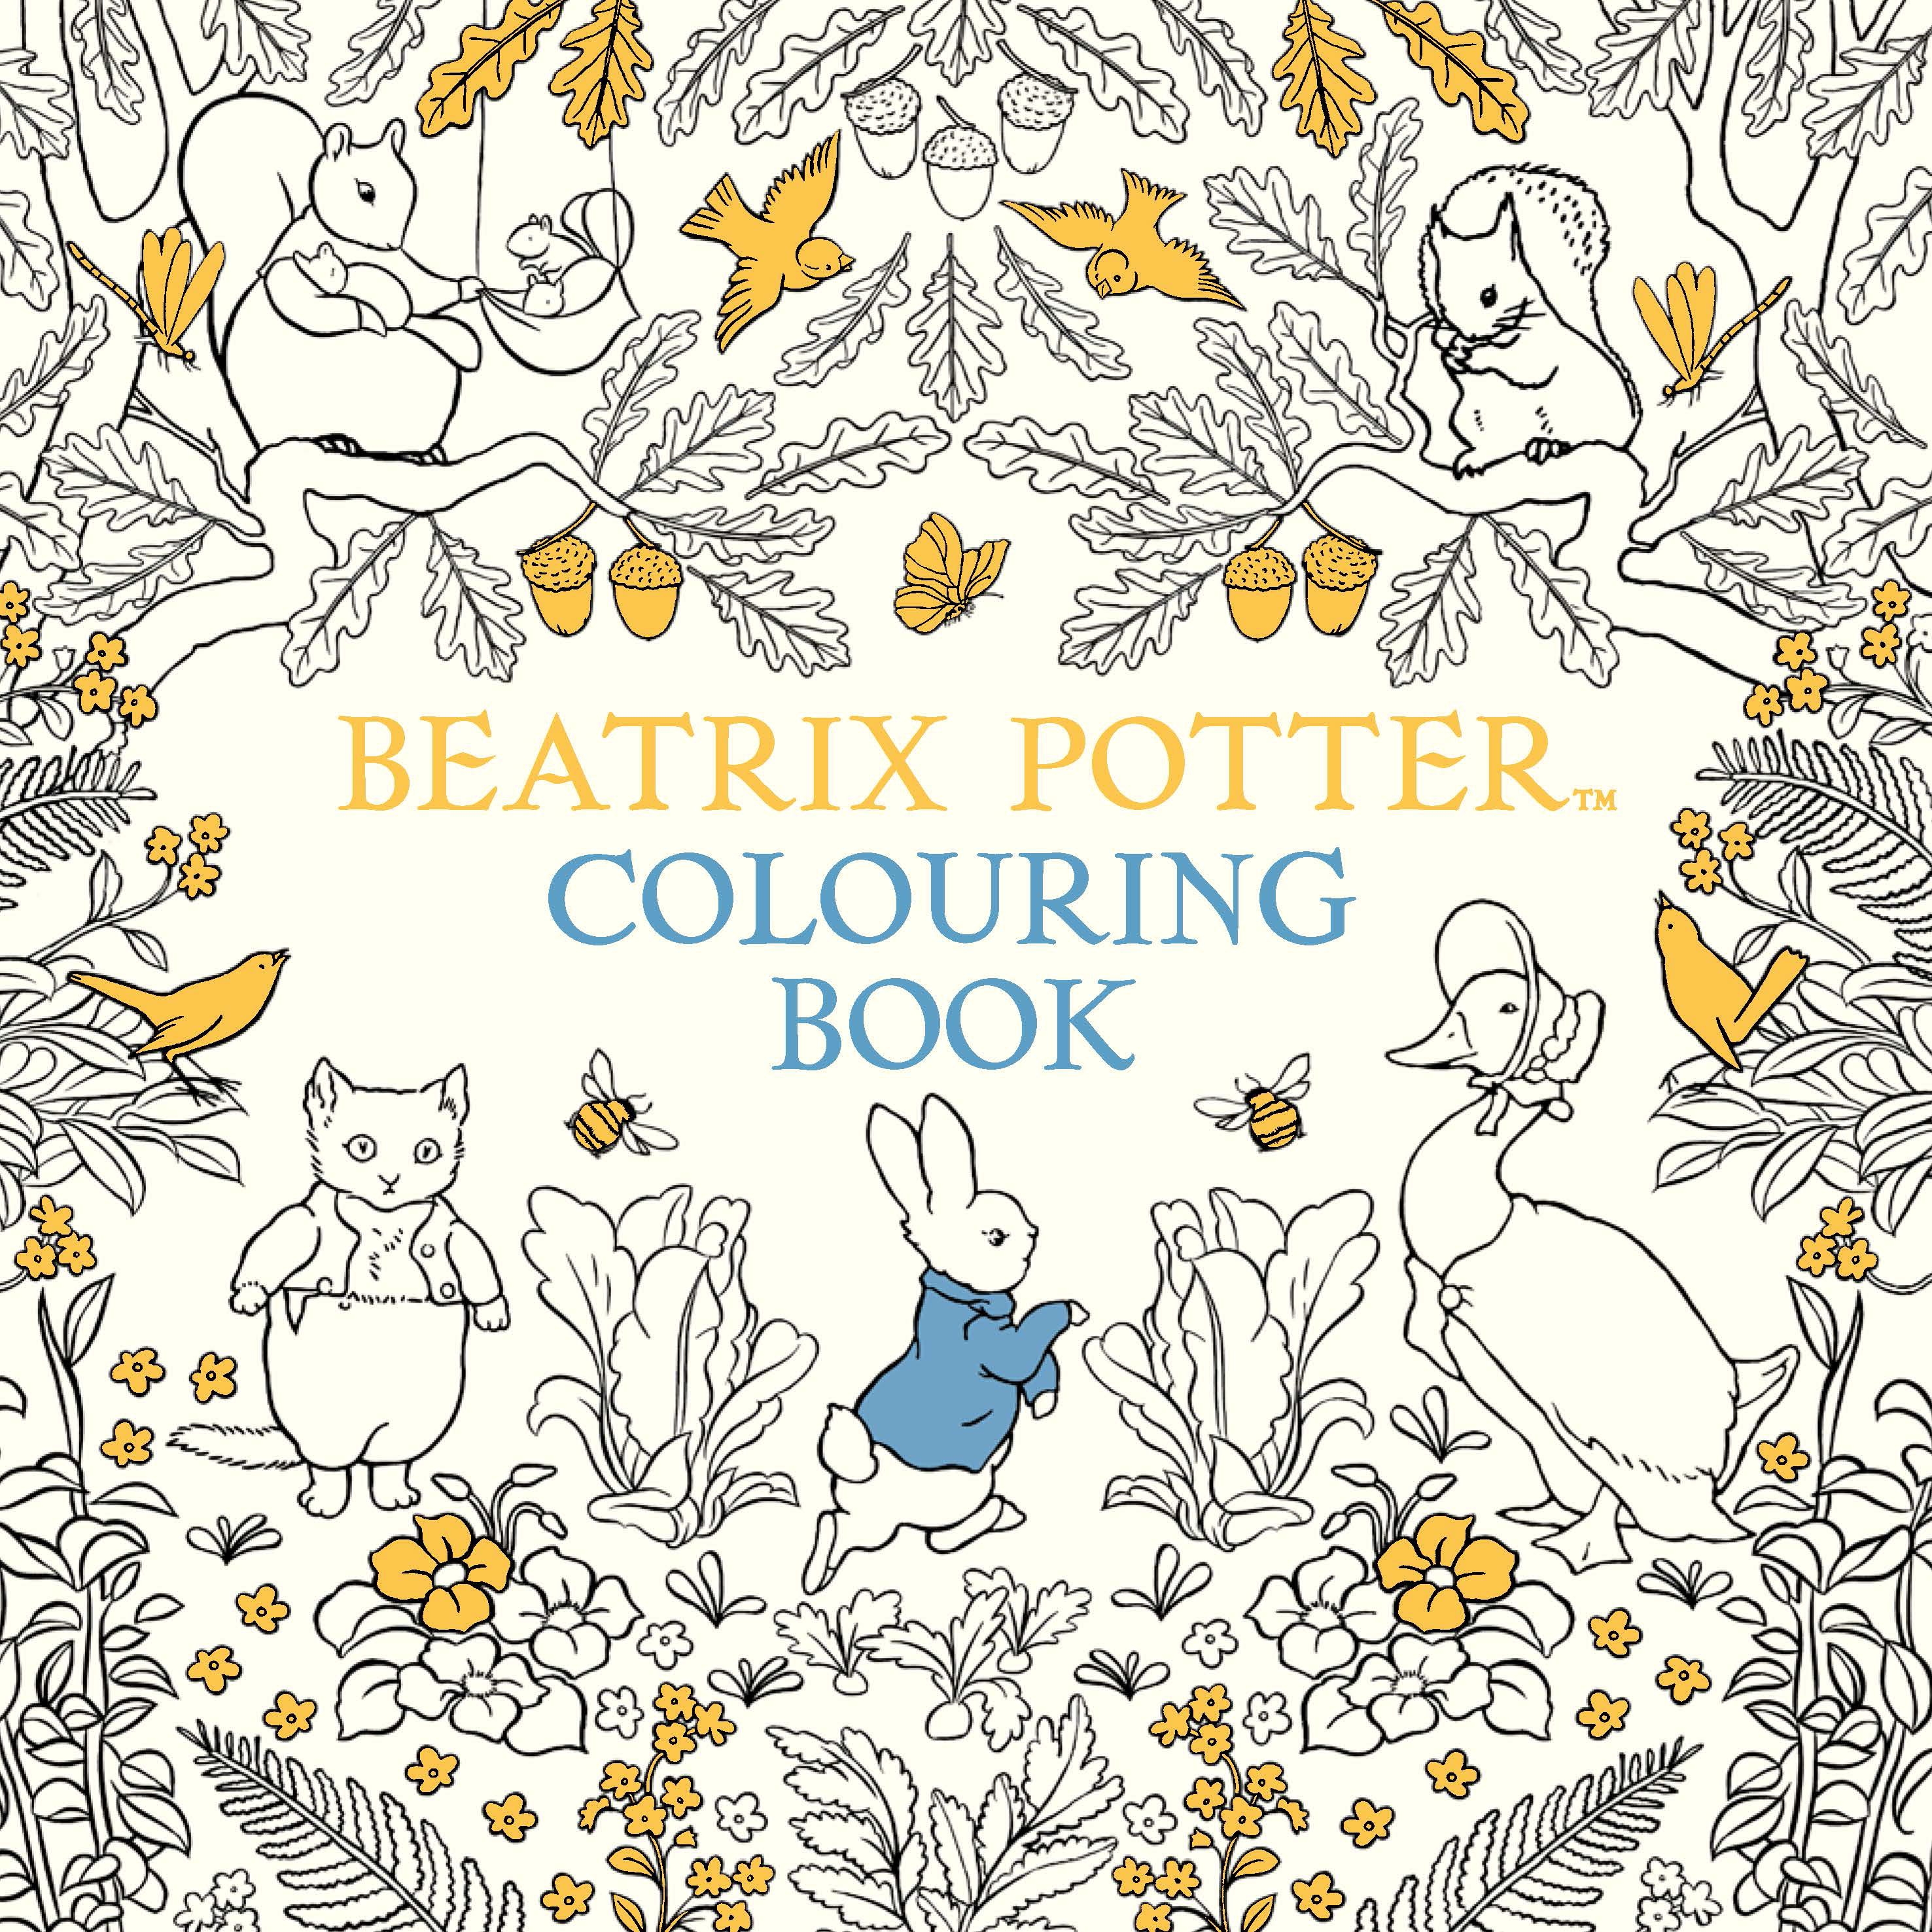 The Beatrix Potter Colouring Book By Warne Penguin Books Beatrix Potter Colouring Pages